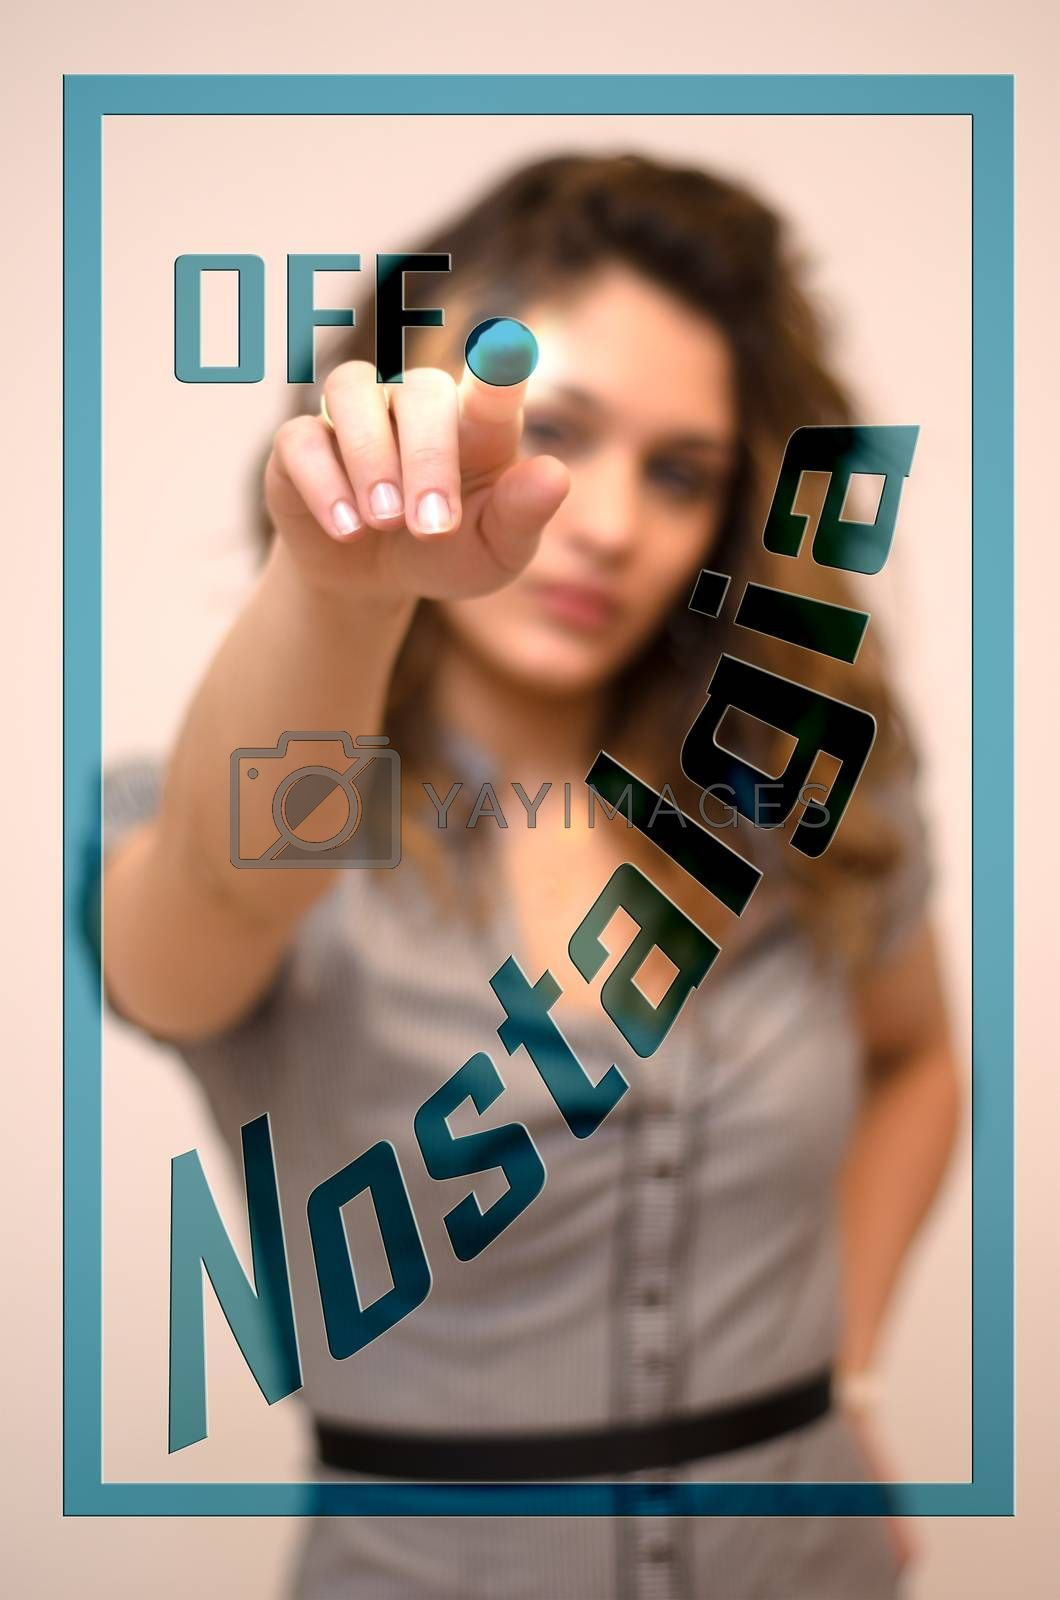 Royalty free image of woman switching off Nostalgia on digital interace by vepar5